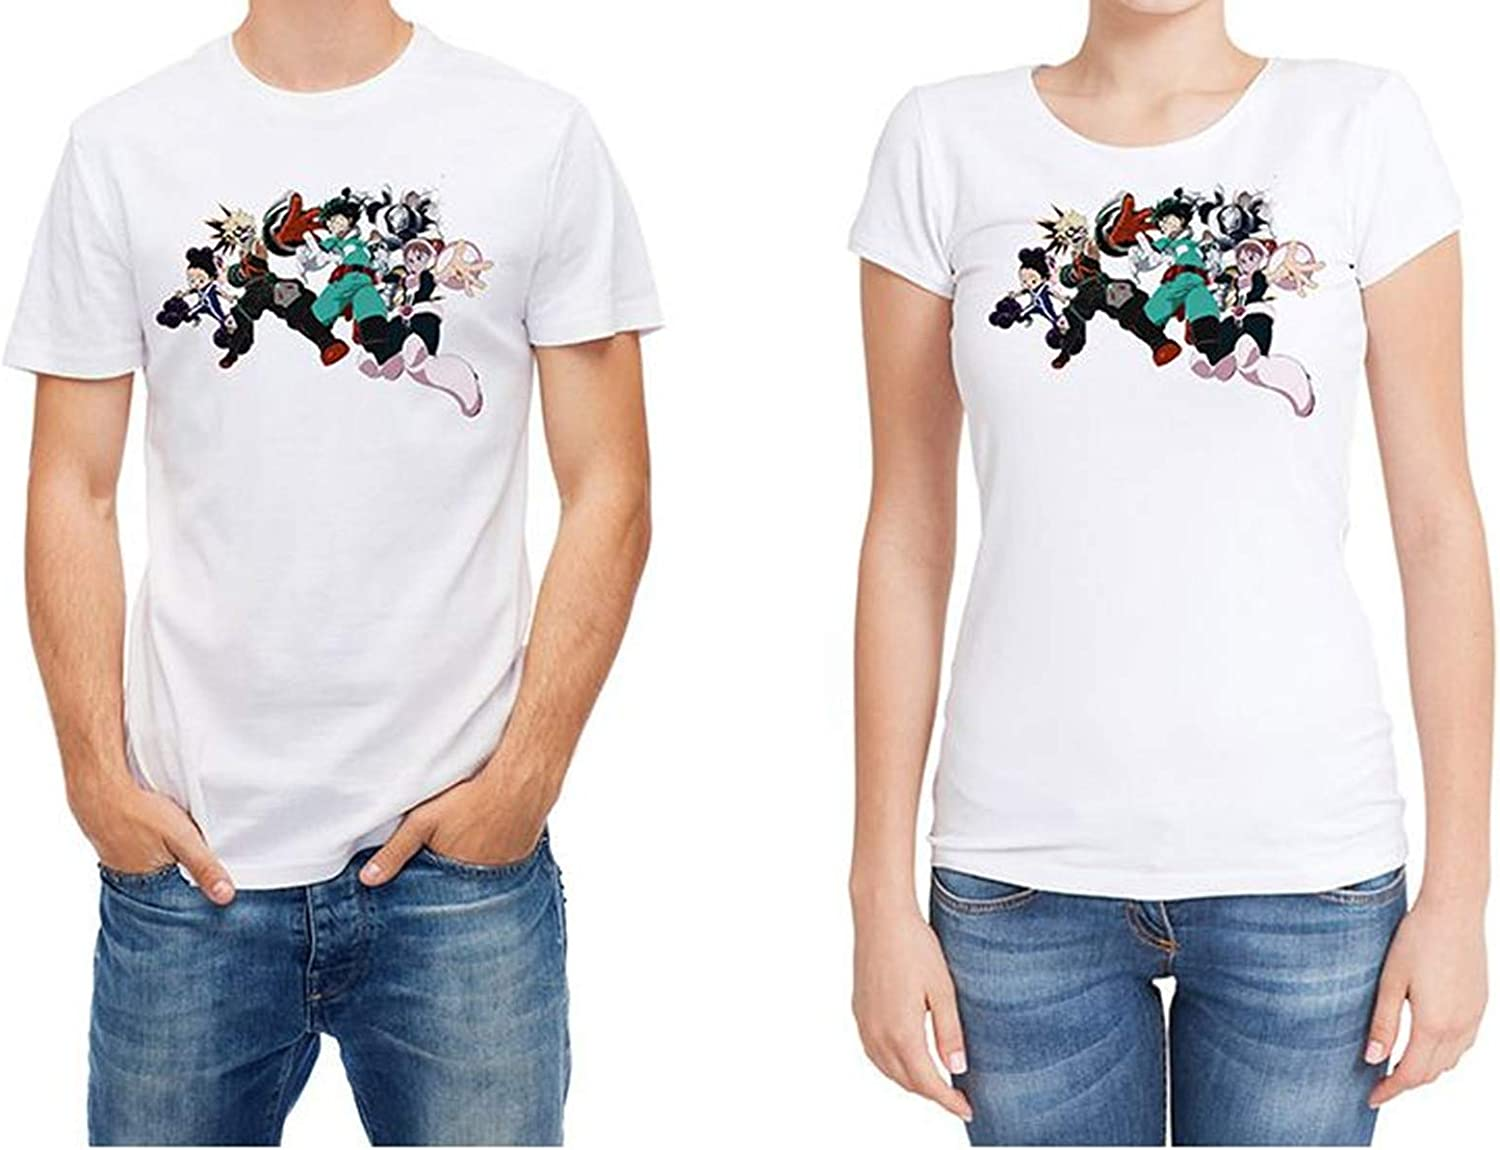 New Round Neck Boys Alike White Print T-Shirts Casual Tees # BTz013